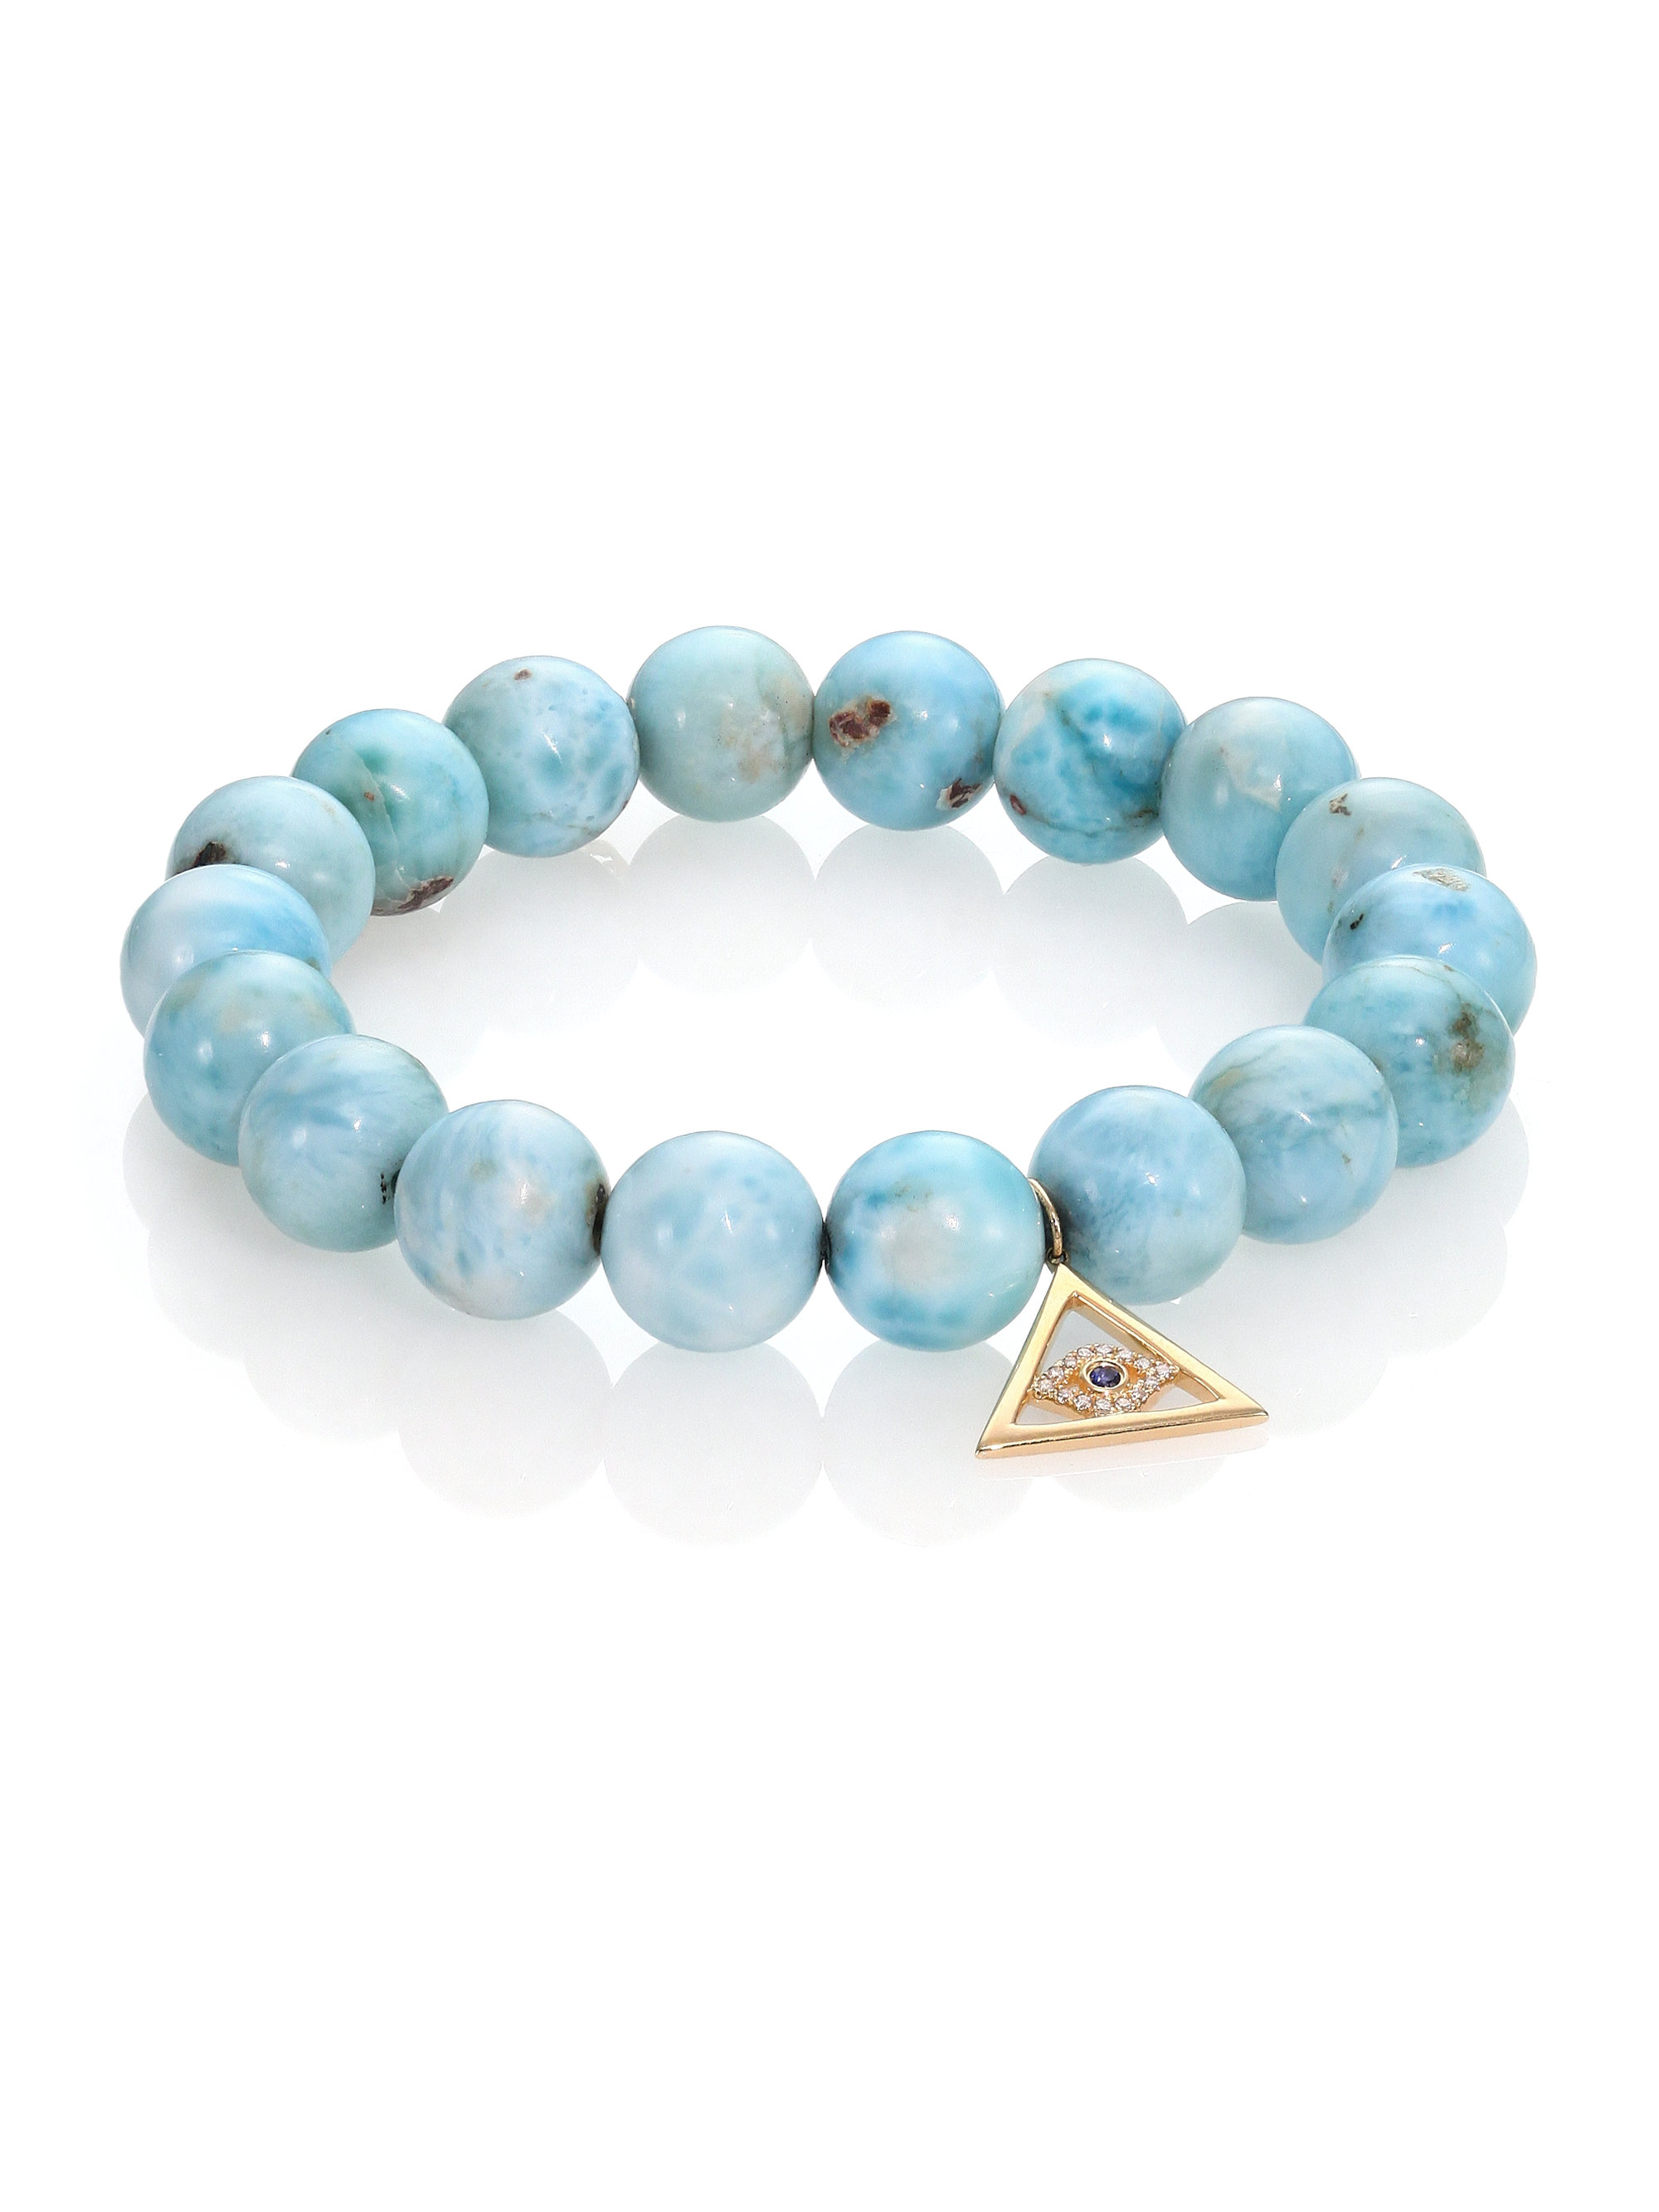 Sydney Evan 14k Larimar Beaded Stretch Bracelet w/ Moroccan Star